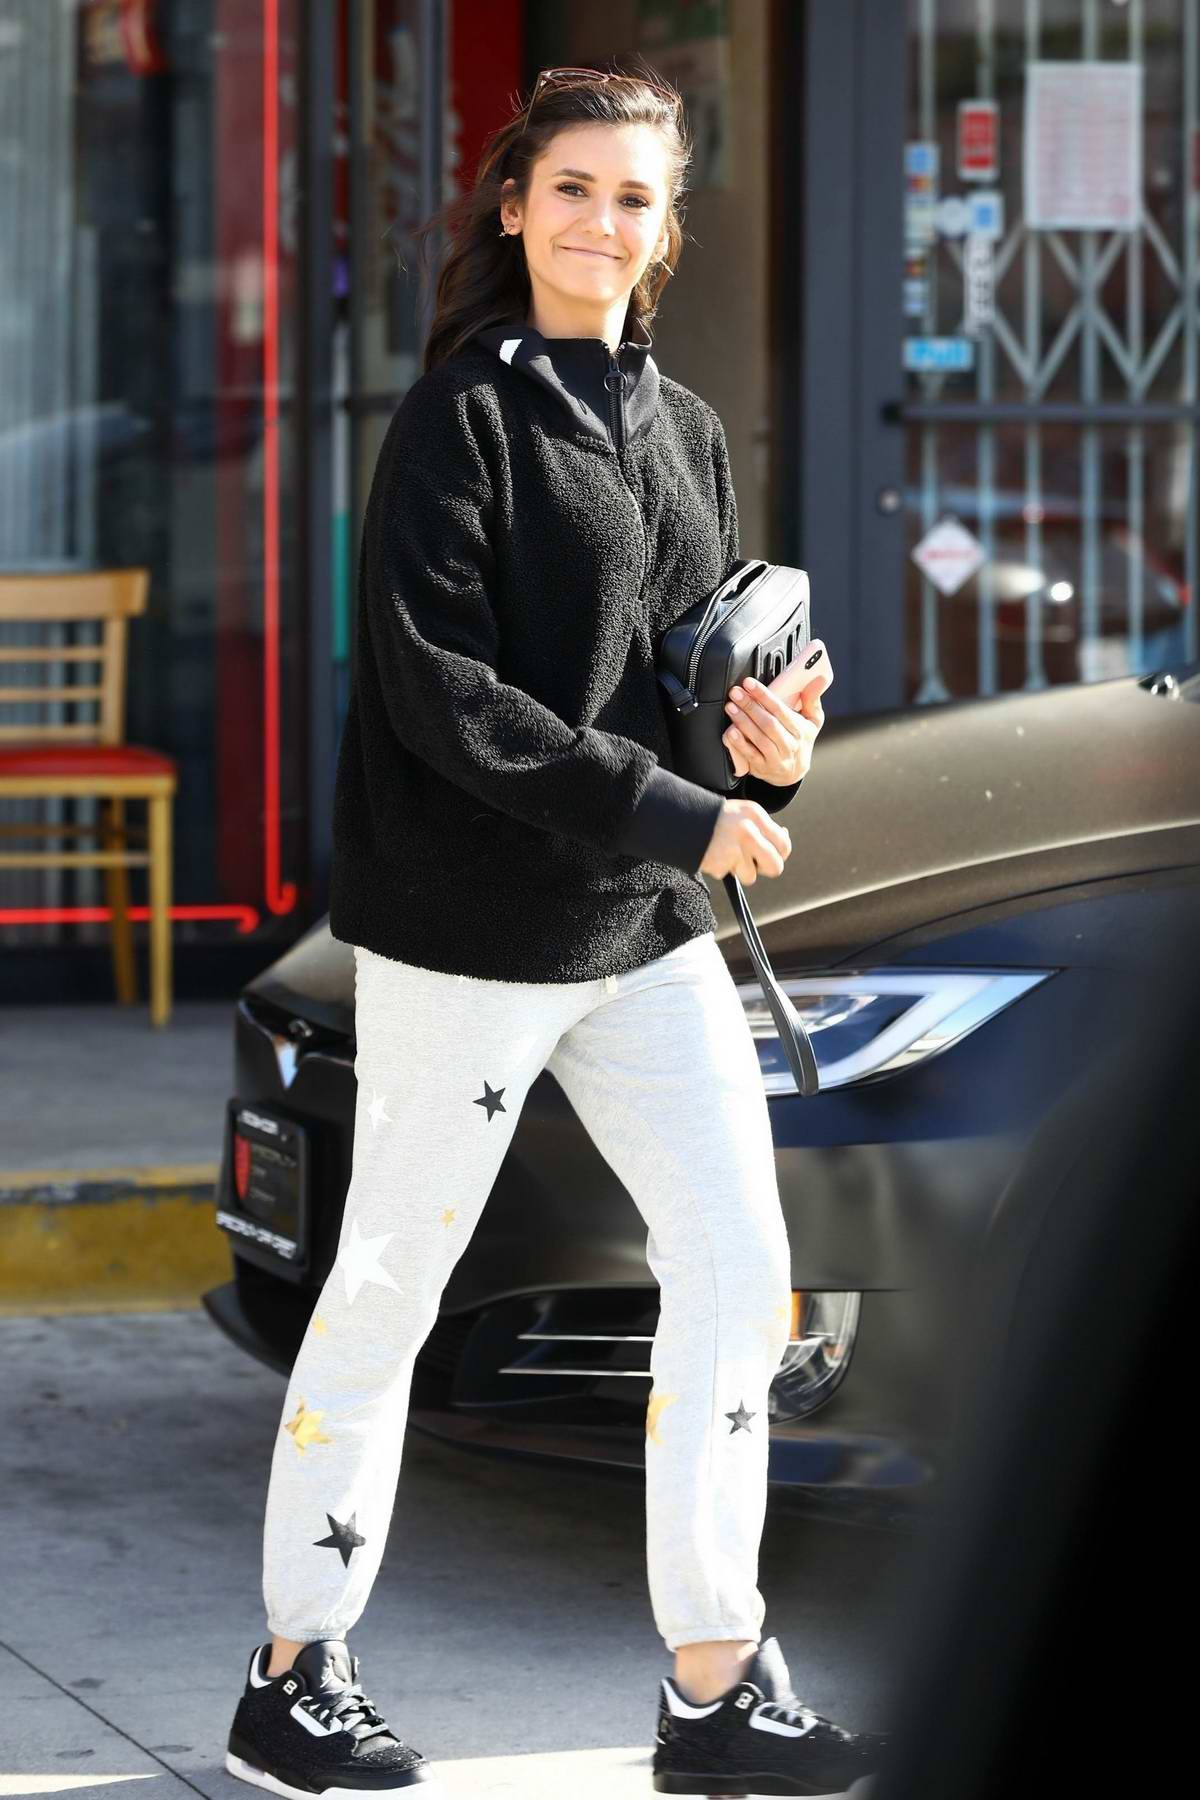 Nina Dobrev is all smiles as she leaves a smoke shop in Hollywood, Los Angeles